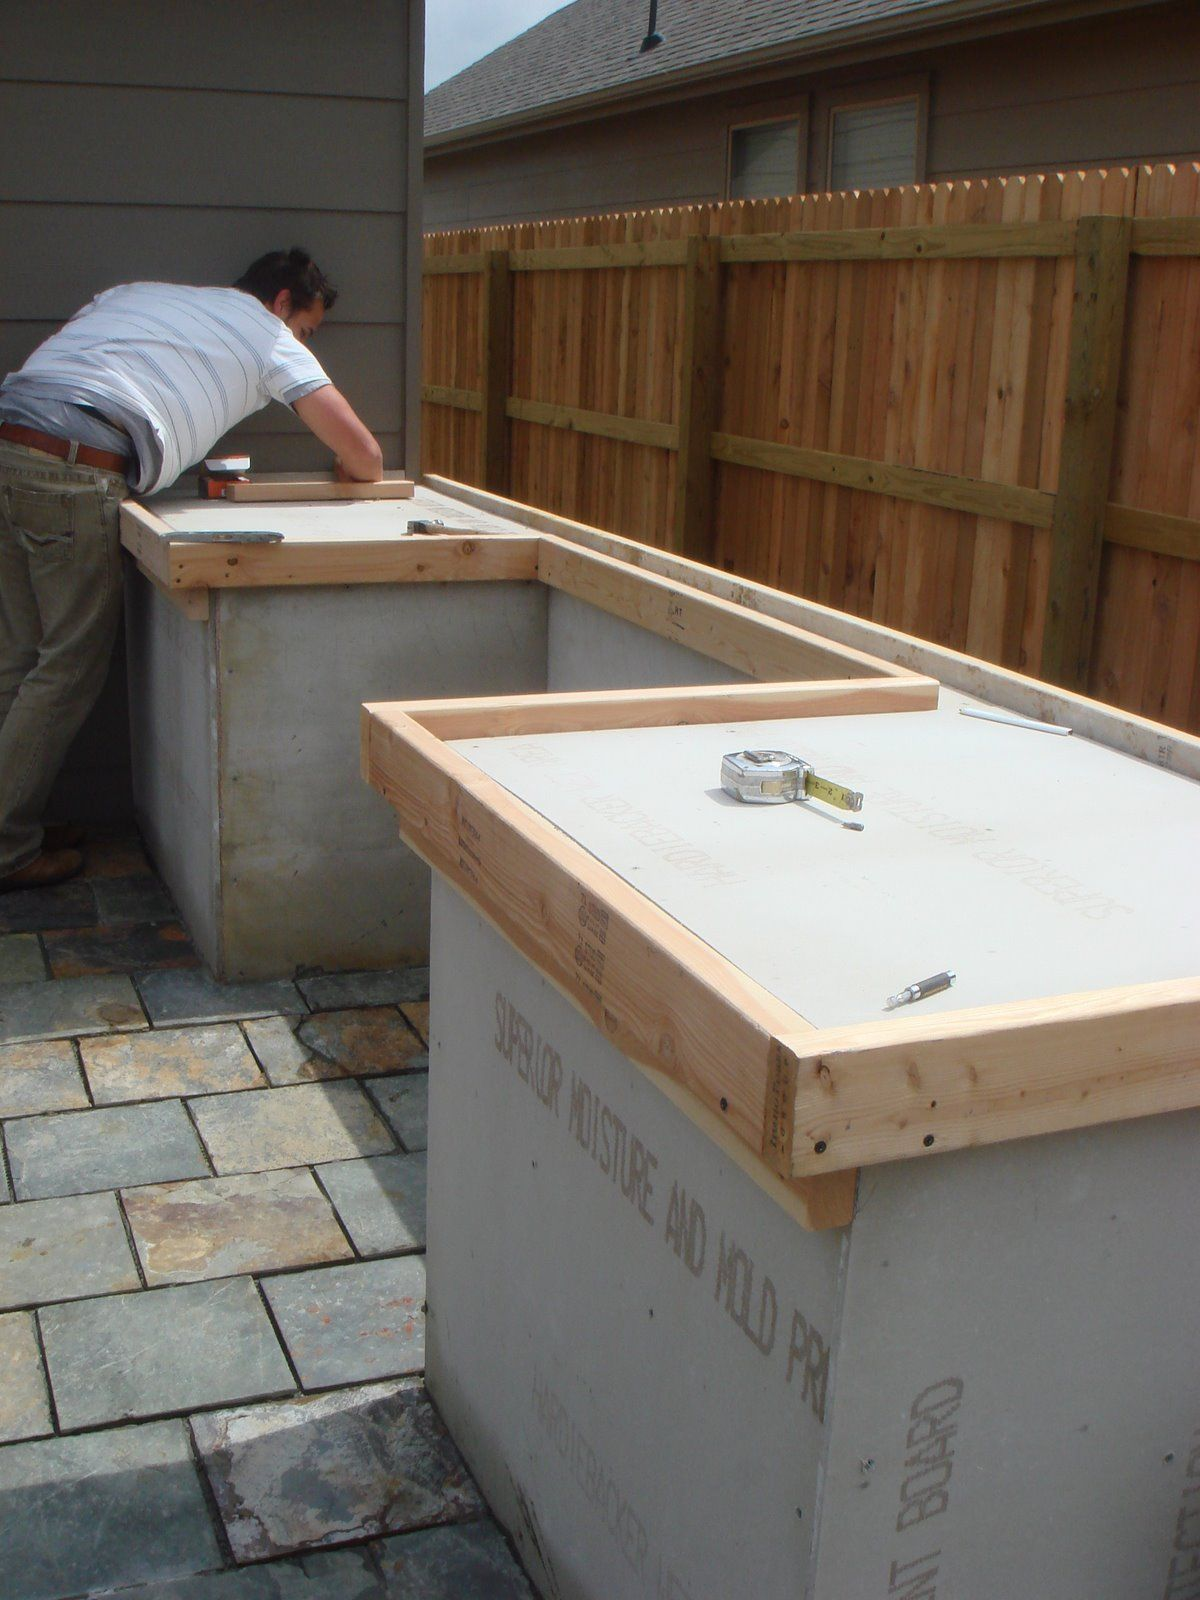 How To Build Outdoor Kitchen Cabinets How To Build Outdoor Kitchen Cabinets?